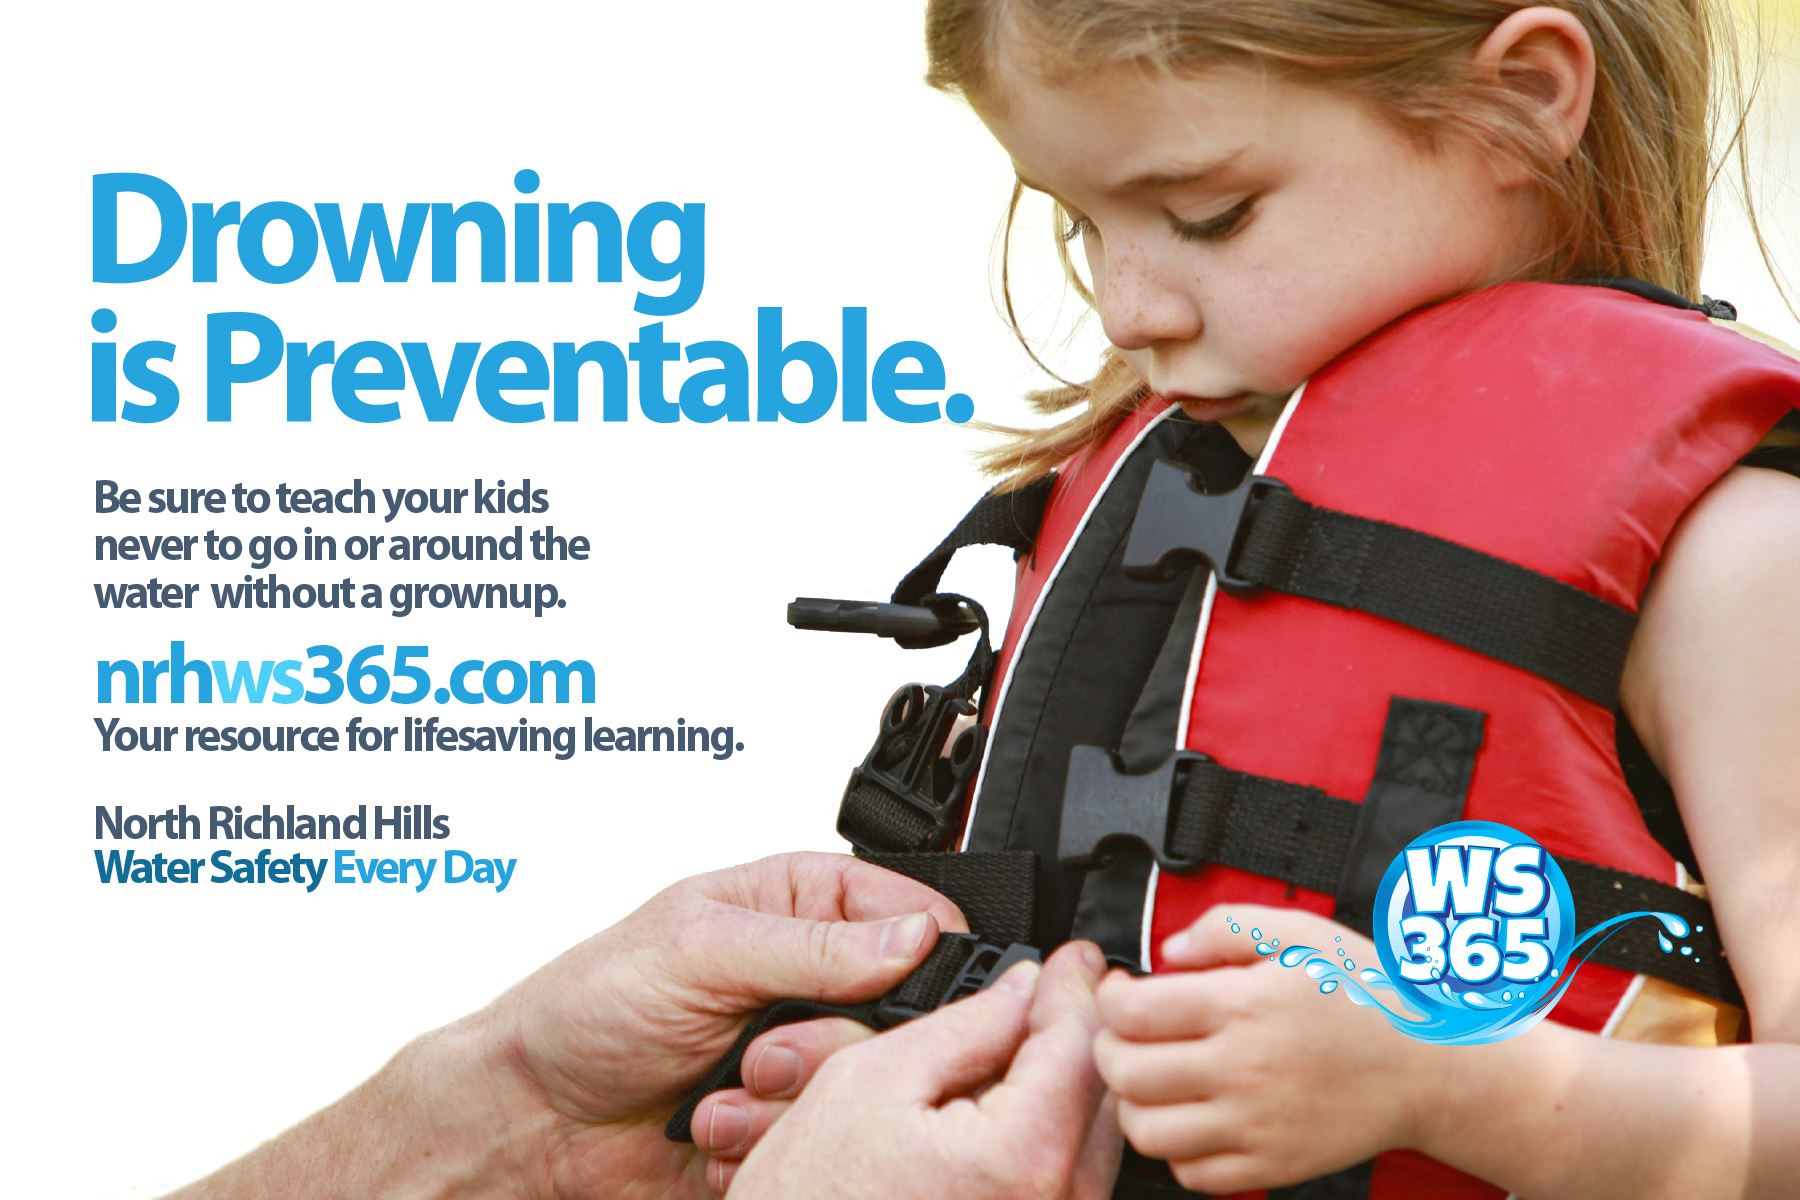 Drowning is Preventable